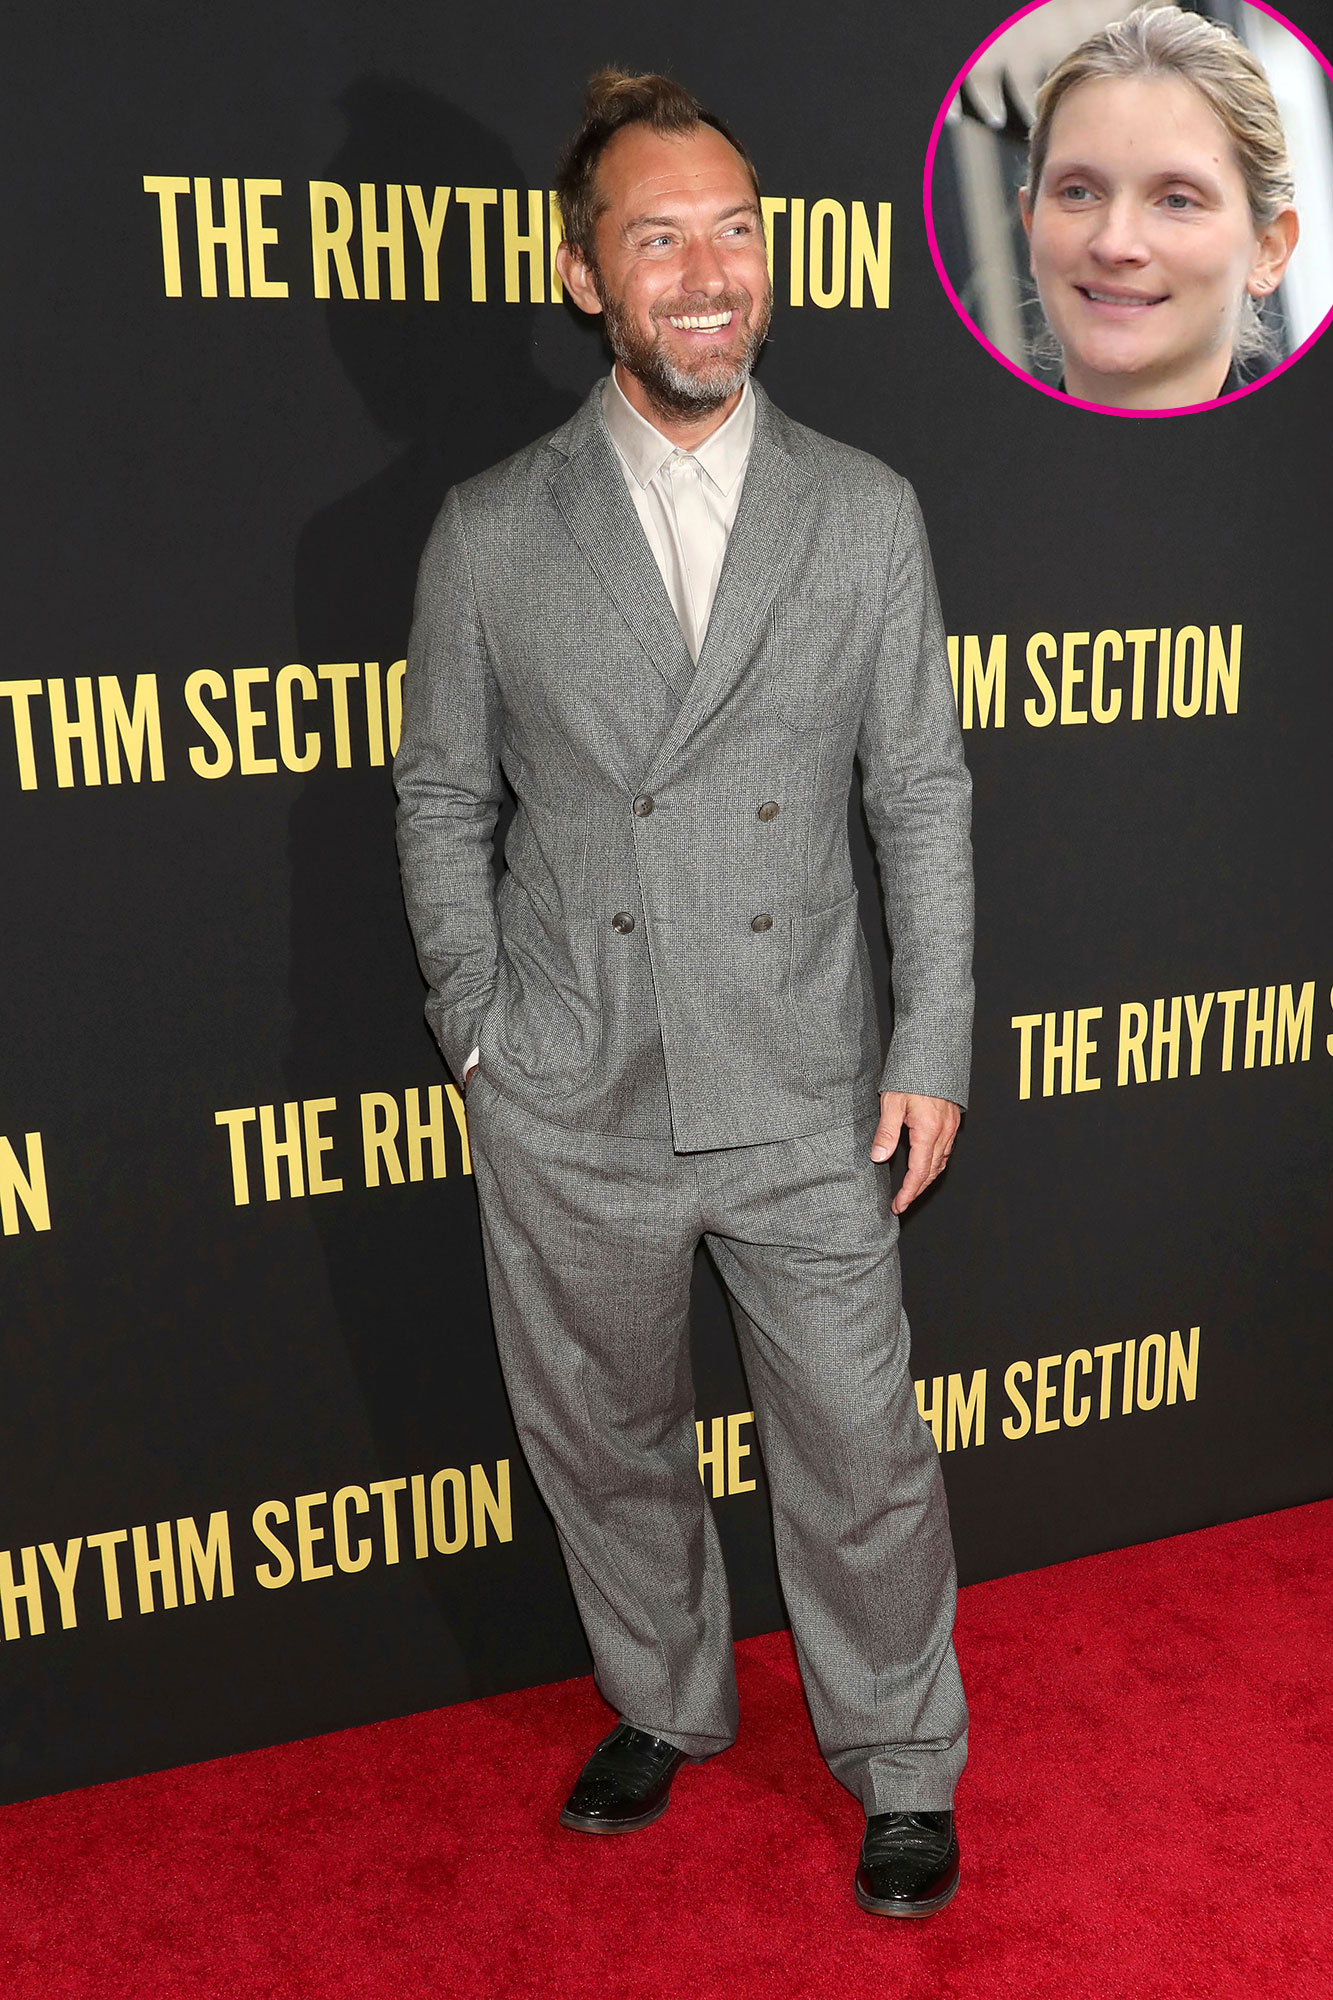 Jude Law Pregnant Wife Expecting 1st Baby Together His 6th